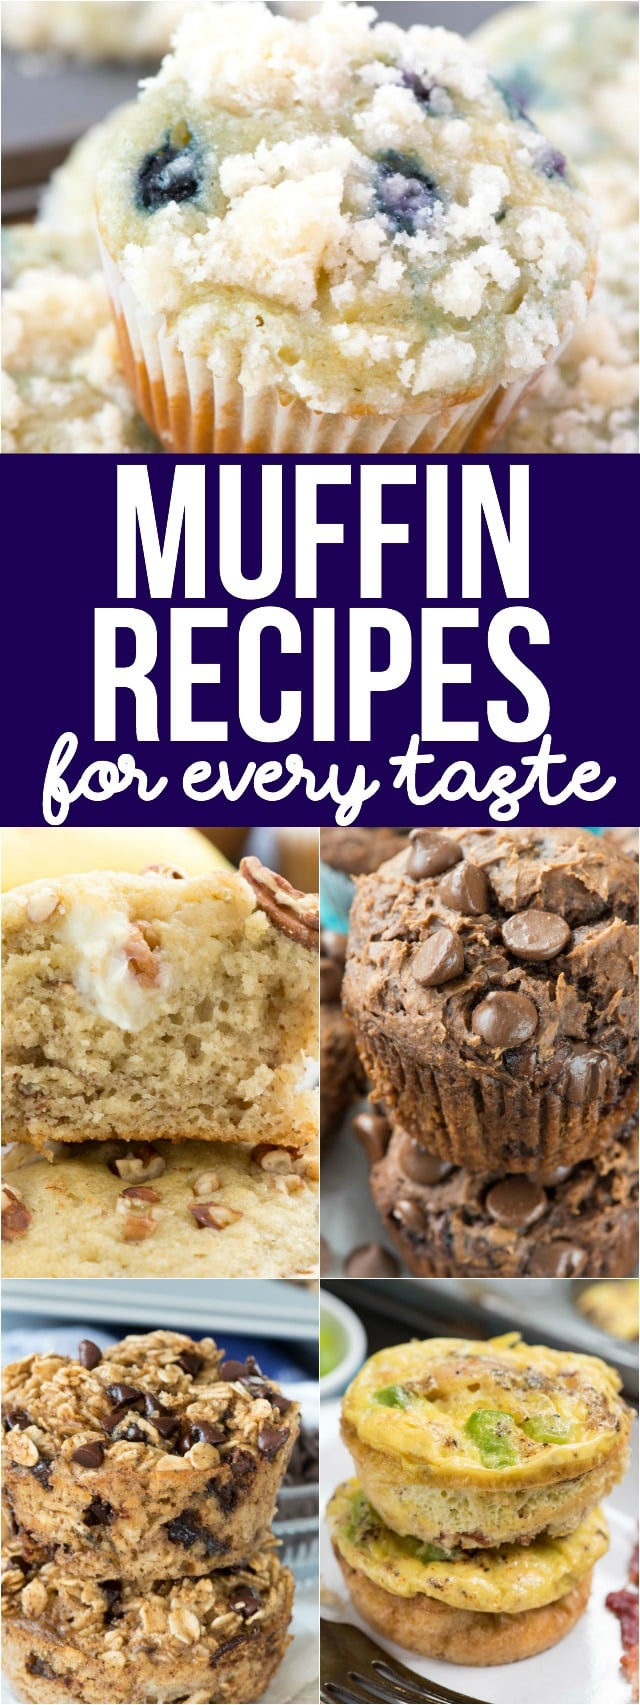 If you love muffins, you've come to the right place. This is a complete list of all the muffin recipes on Crazy for Crust! From blueberry muffins to homemade muffins and all the flavors in-between, you're guaranteed to find a muffin recipe you love on this list.